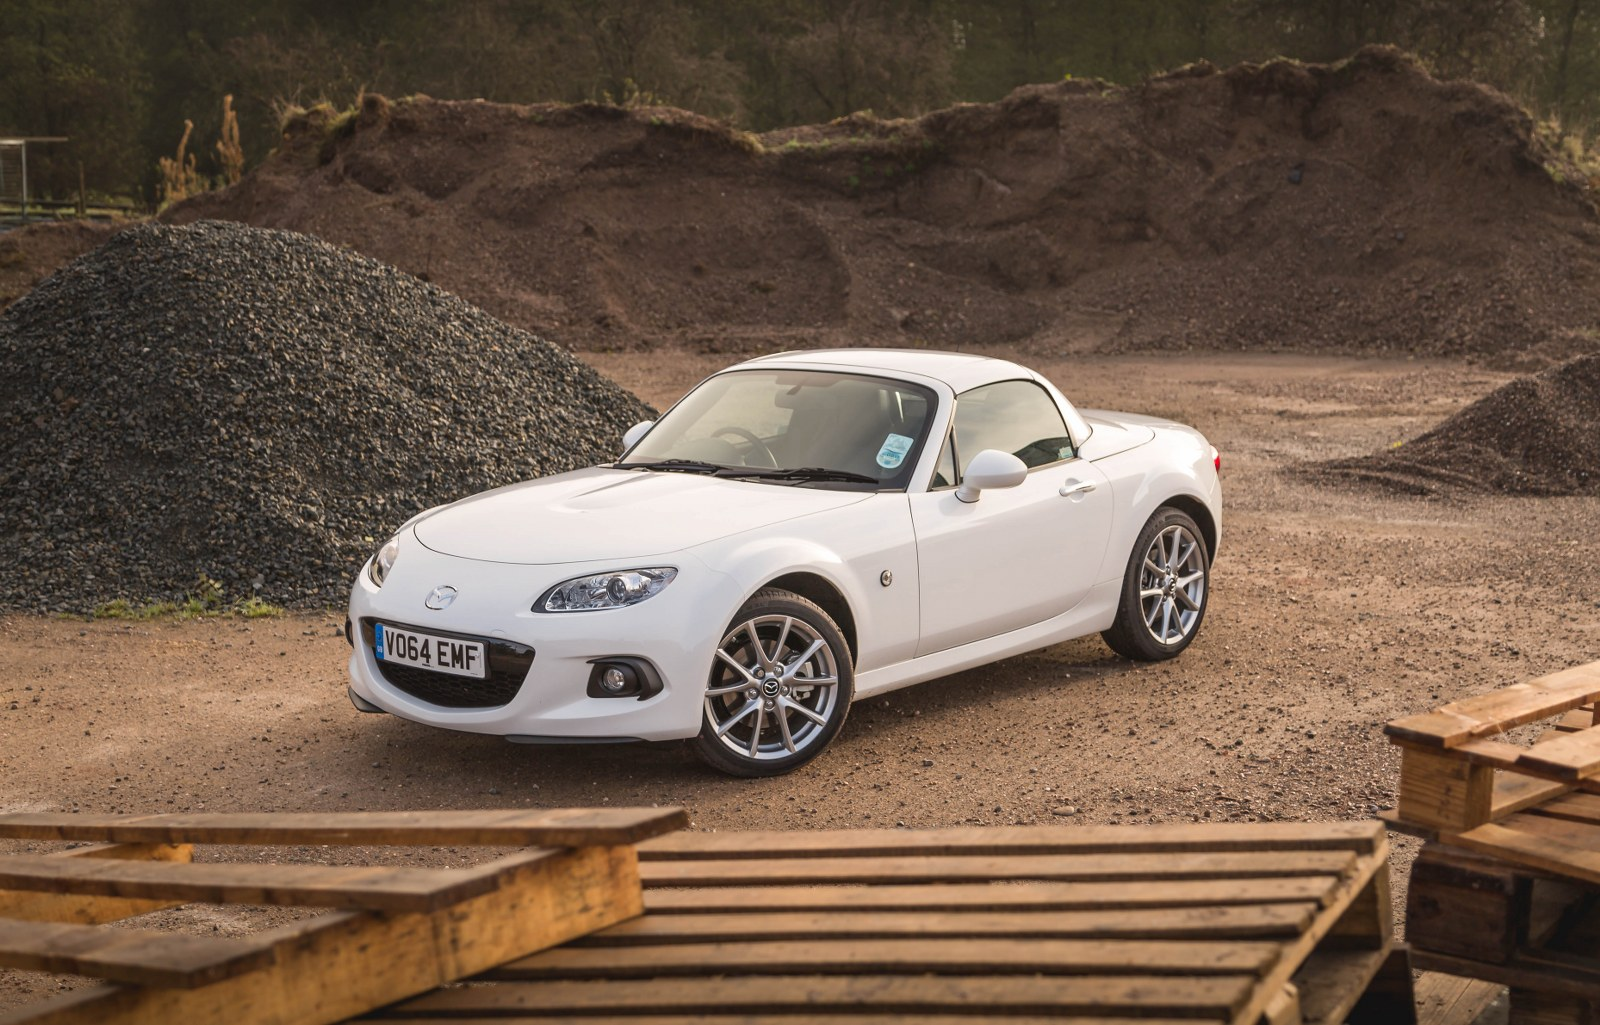 mazda mx 5 review 2014 sport coupe reviewed by motor verso. Black Bedroom Furniture Sets. Home Design Ideas